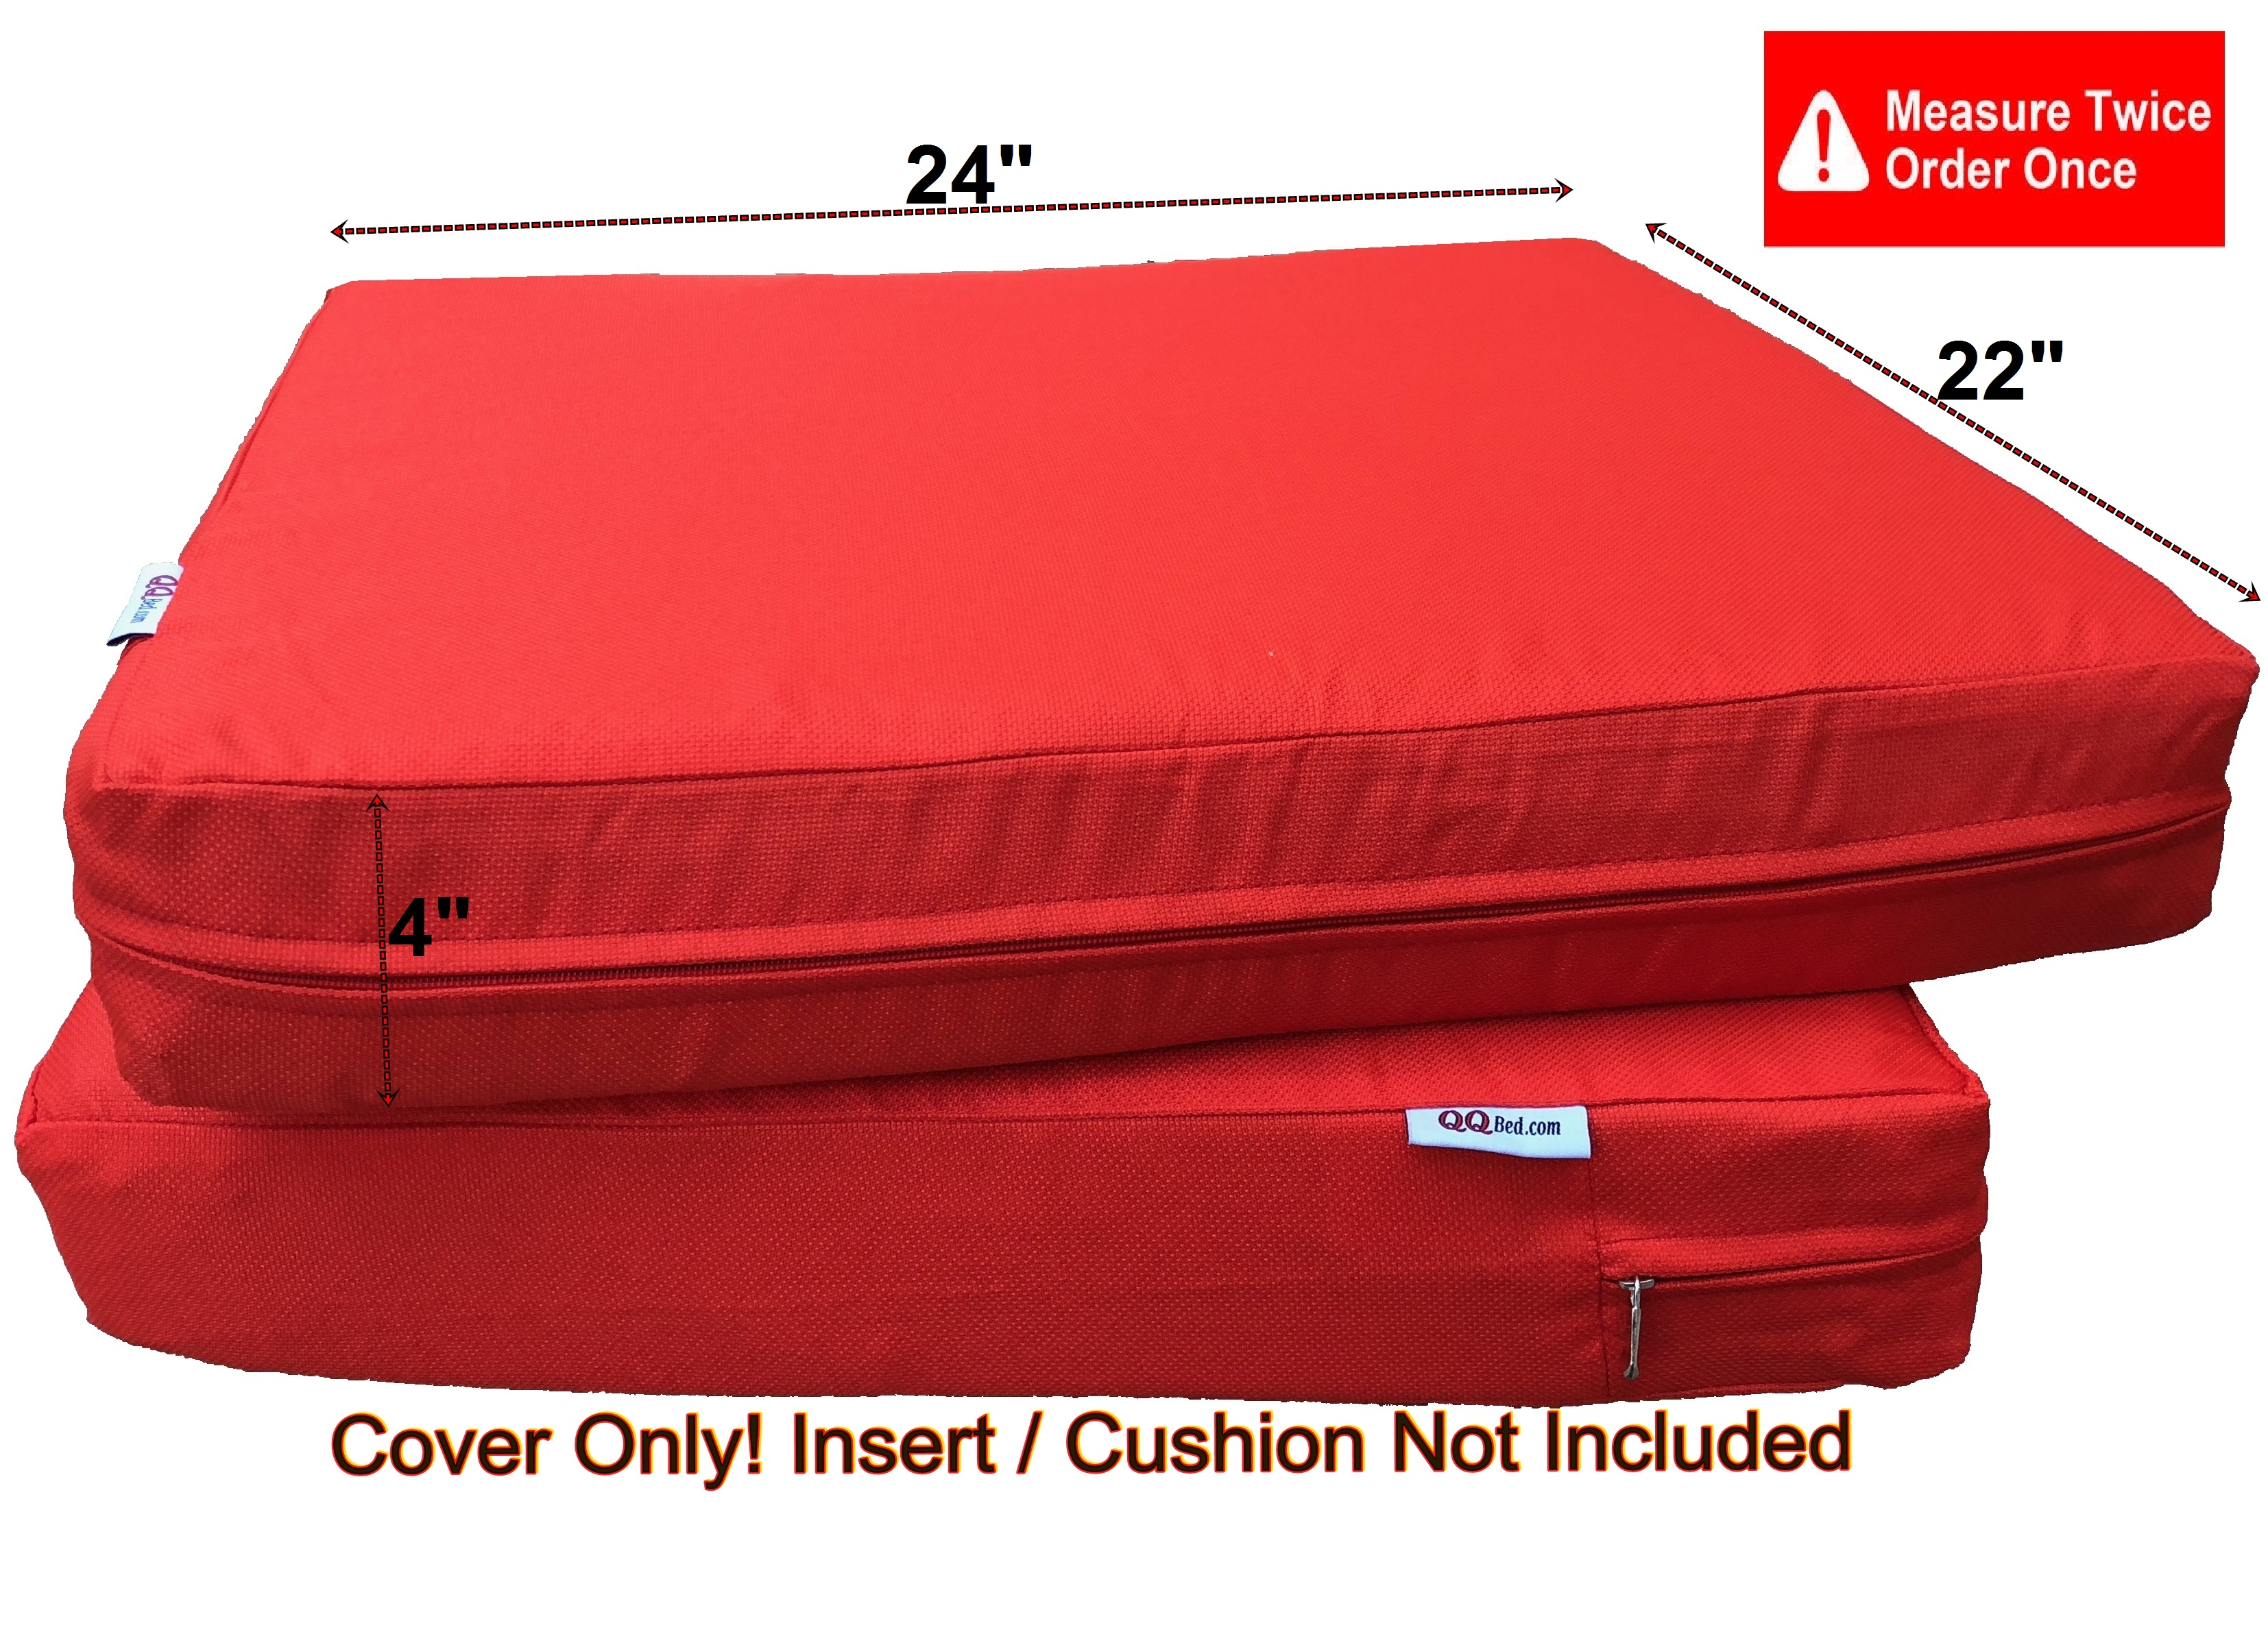 Seat Cushion Cover Replacement Accessory Patio Elements Swing Waterproof